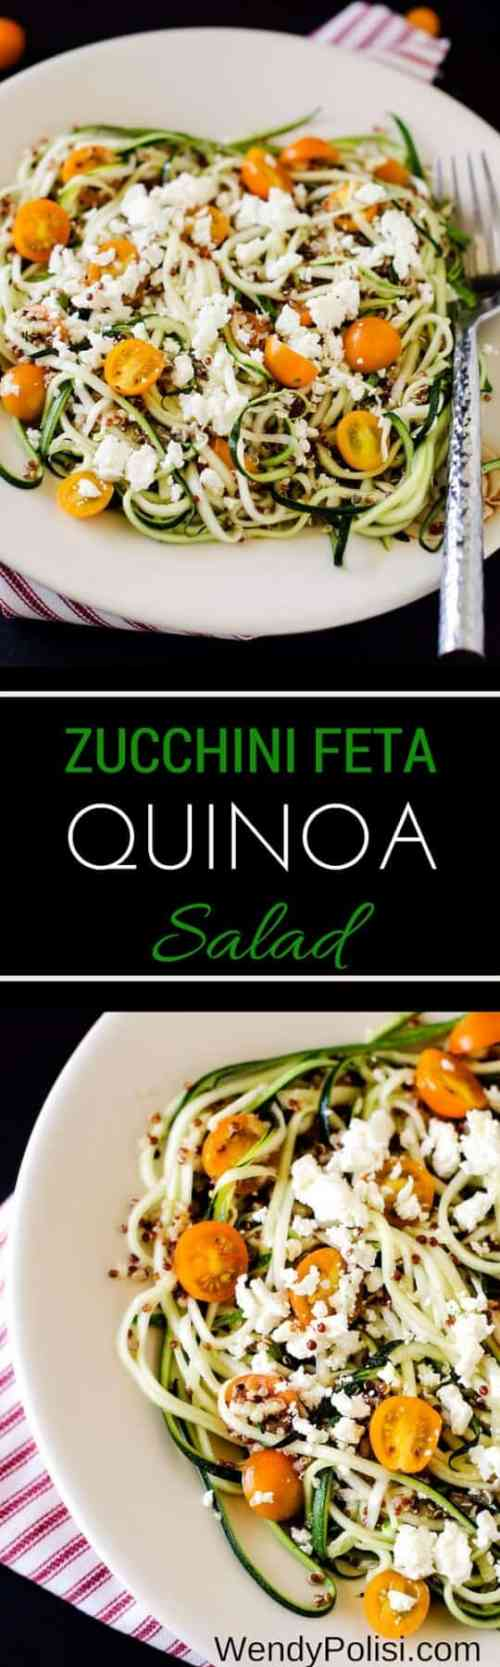 doTERRA Zucchini Feta Quinoa Salad with Lemon Dill Dressing Recipe